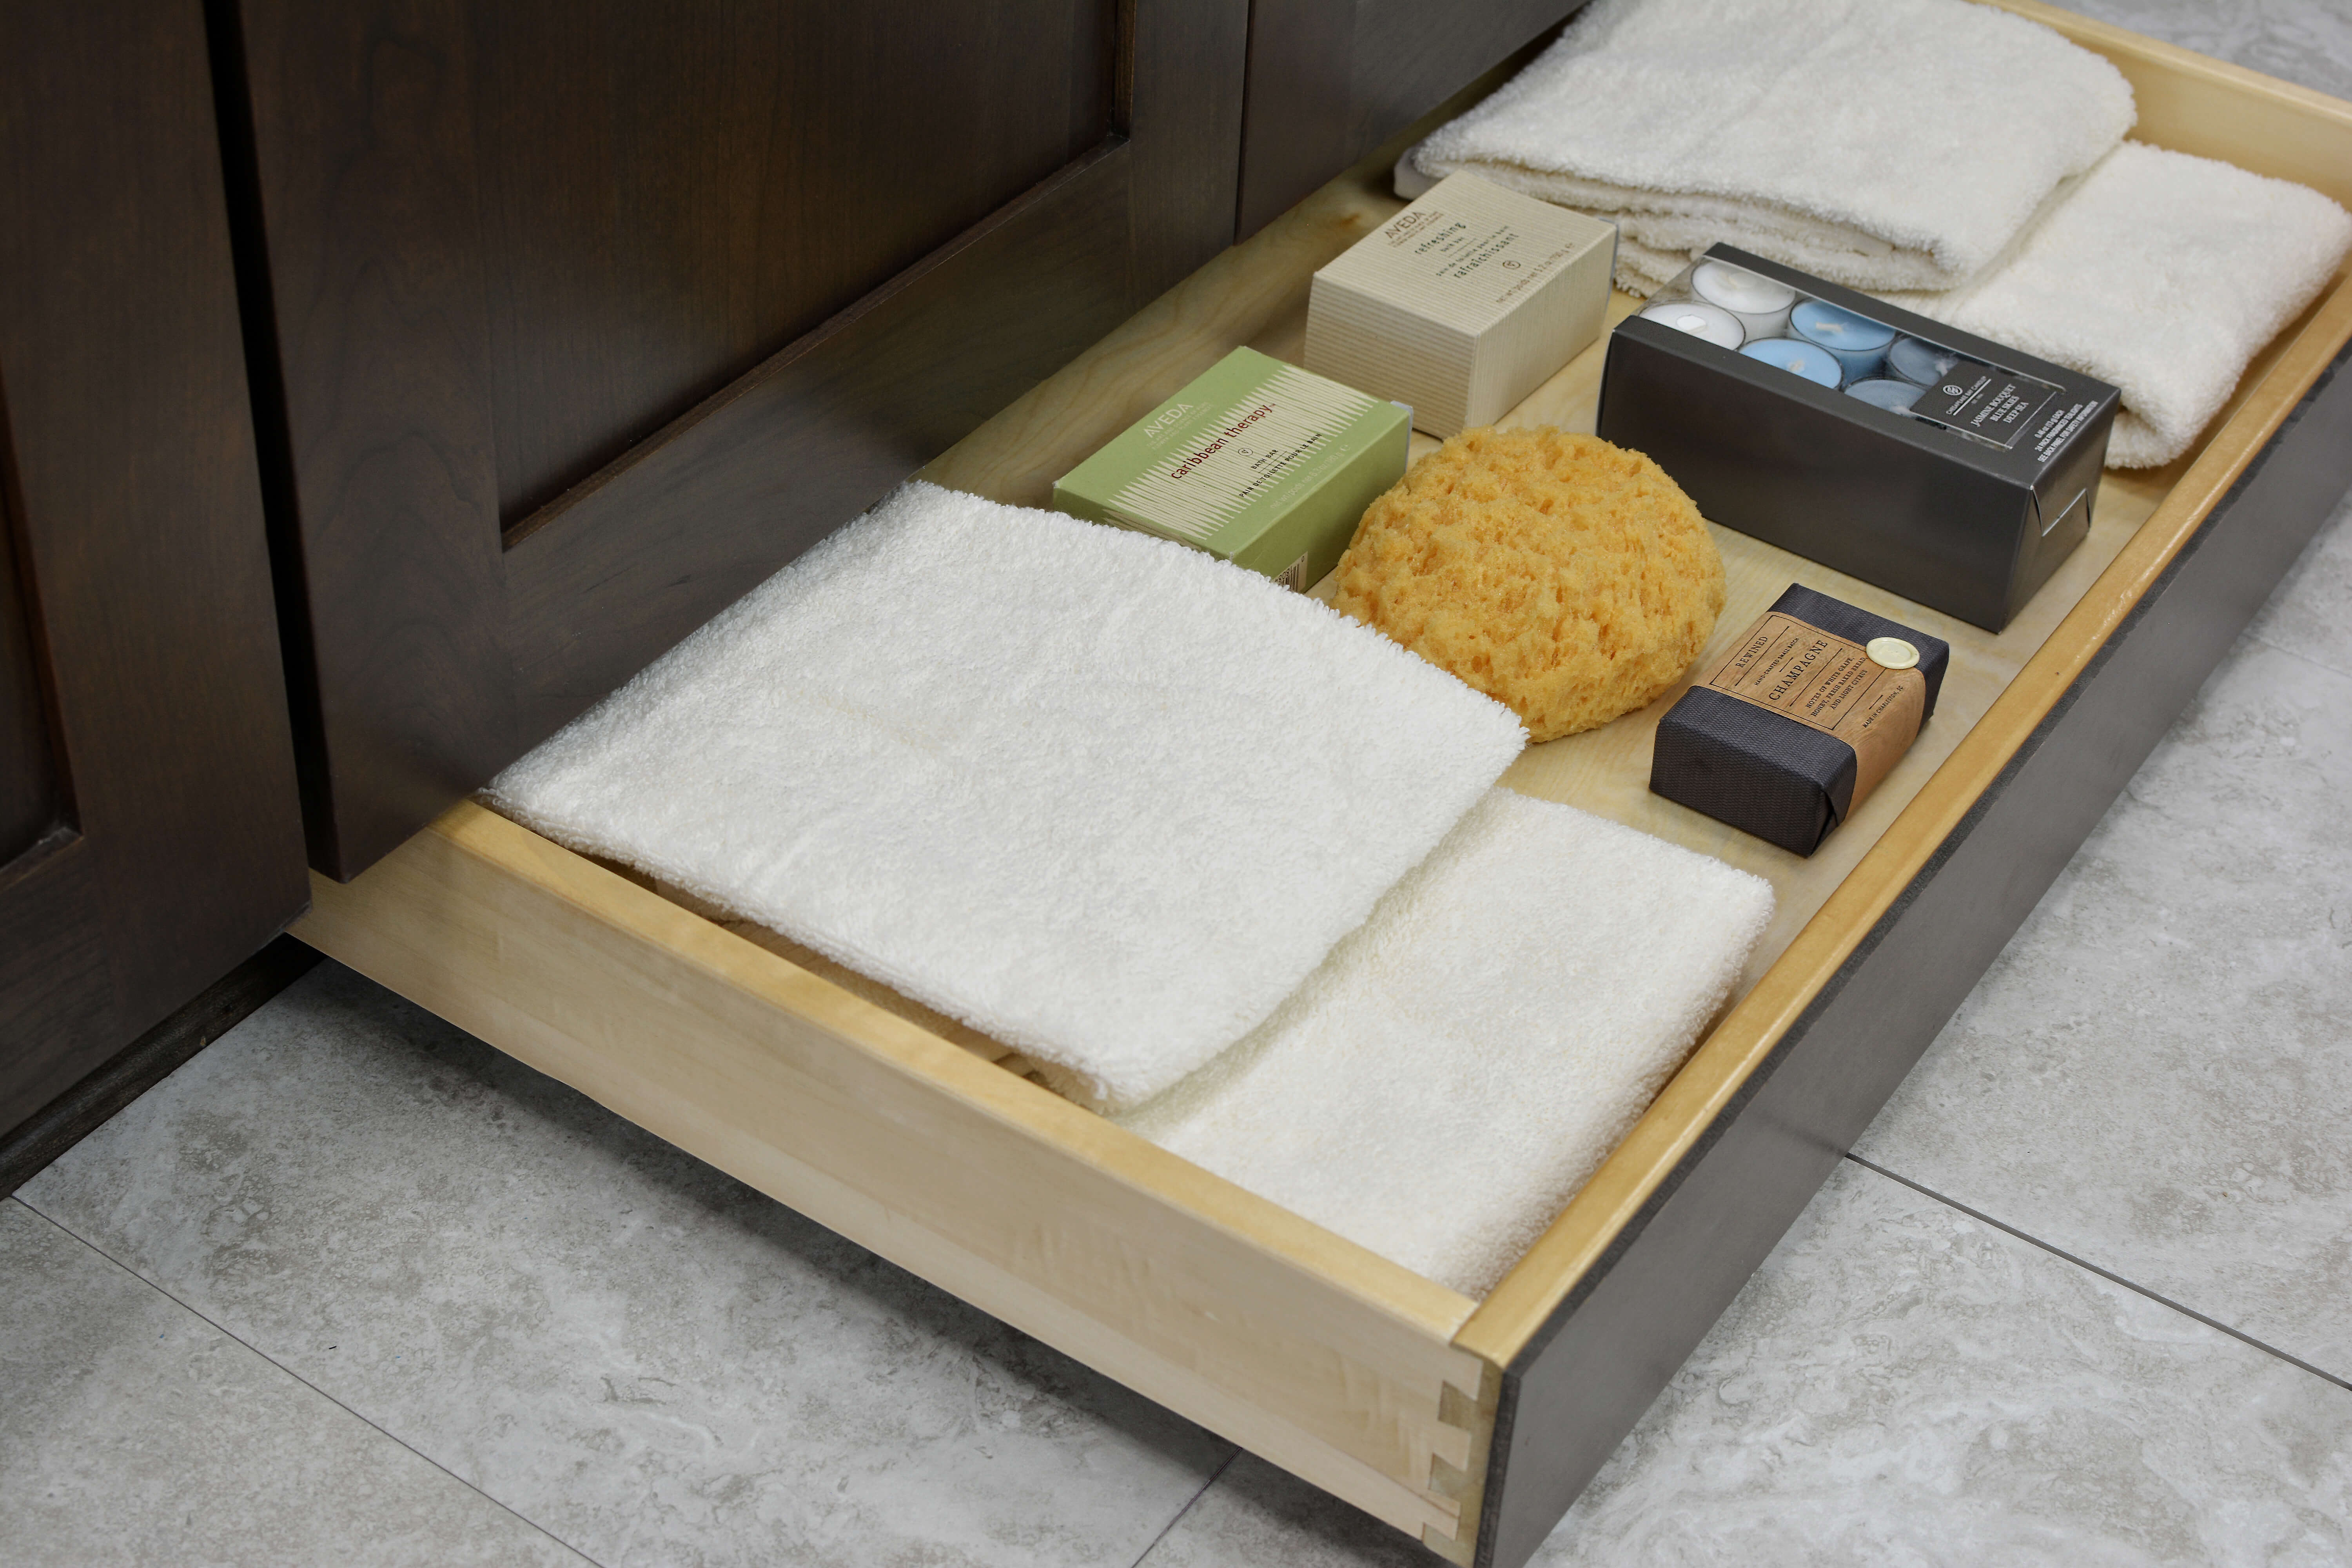 Miscellaneous items can find a home in a Dura Supreme Toe-Kick drawer hidden at the foot of your cabinets. It is the perfect place for stashing your spare bathroom supplies to they're out of the way, yet close at hand when you need to restock.